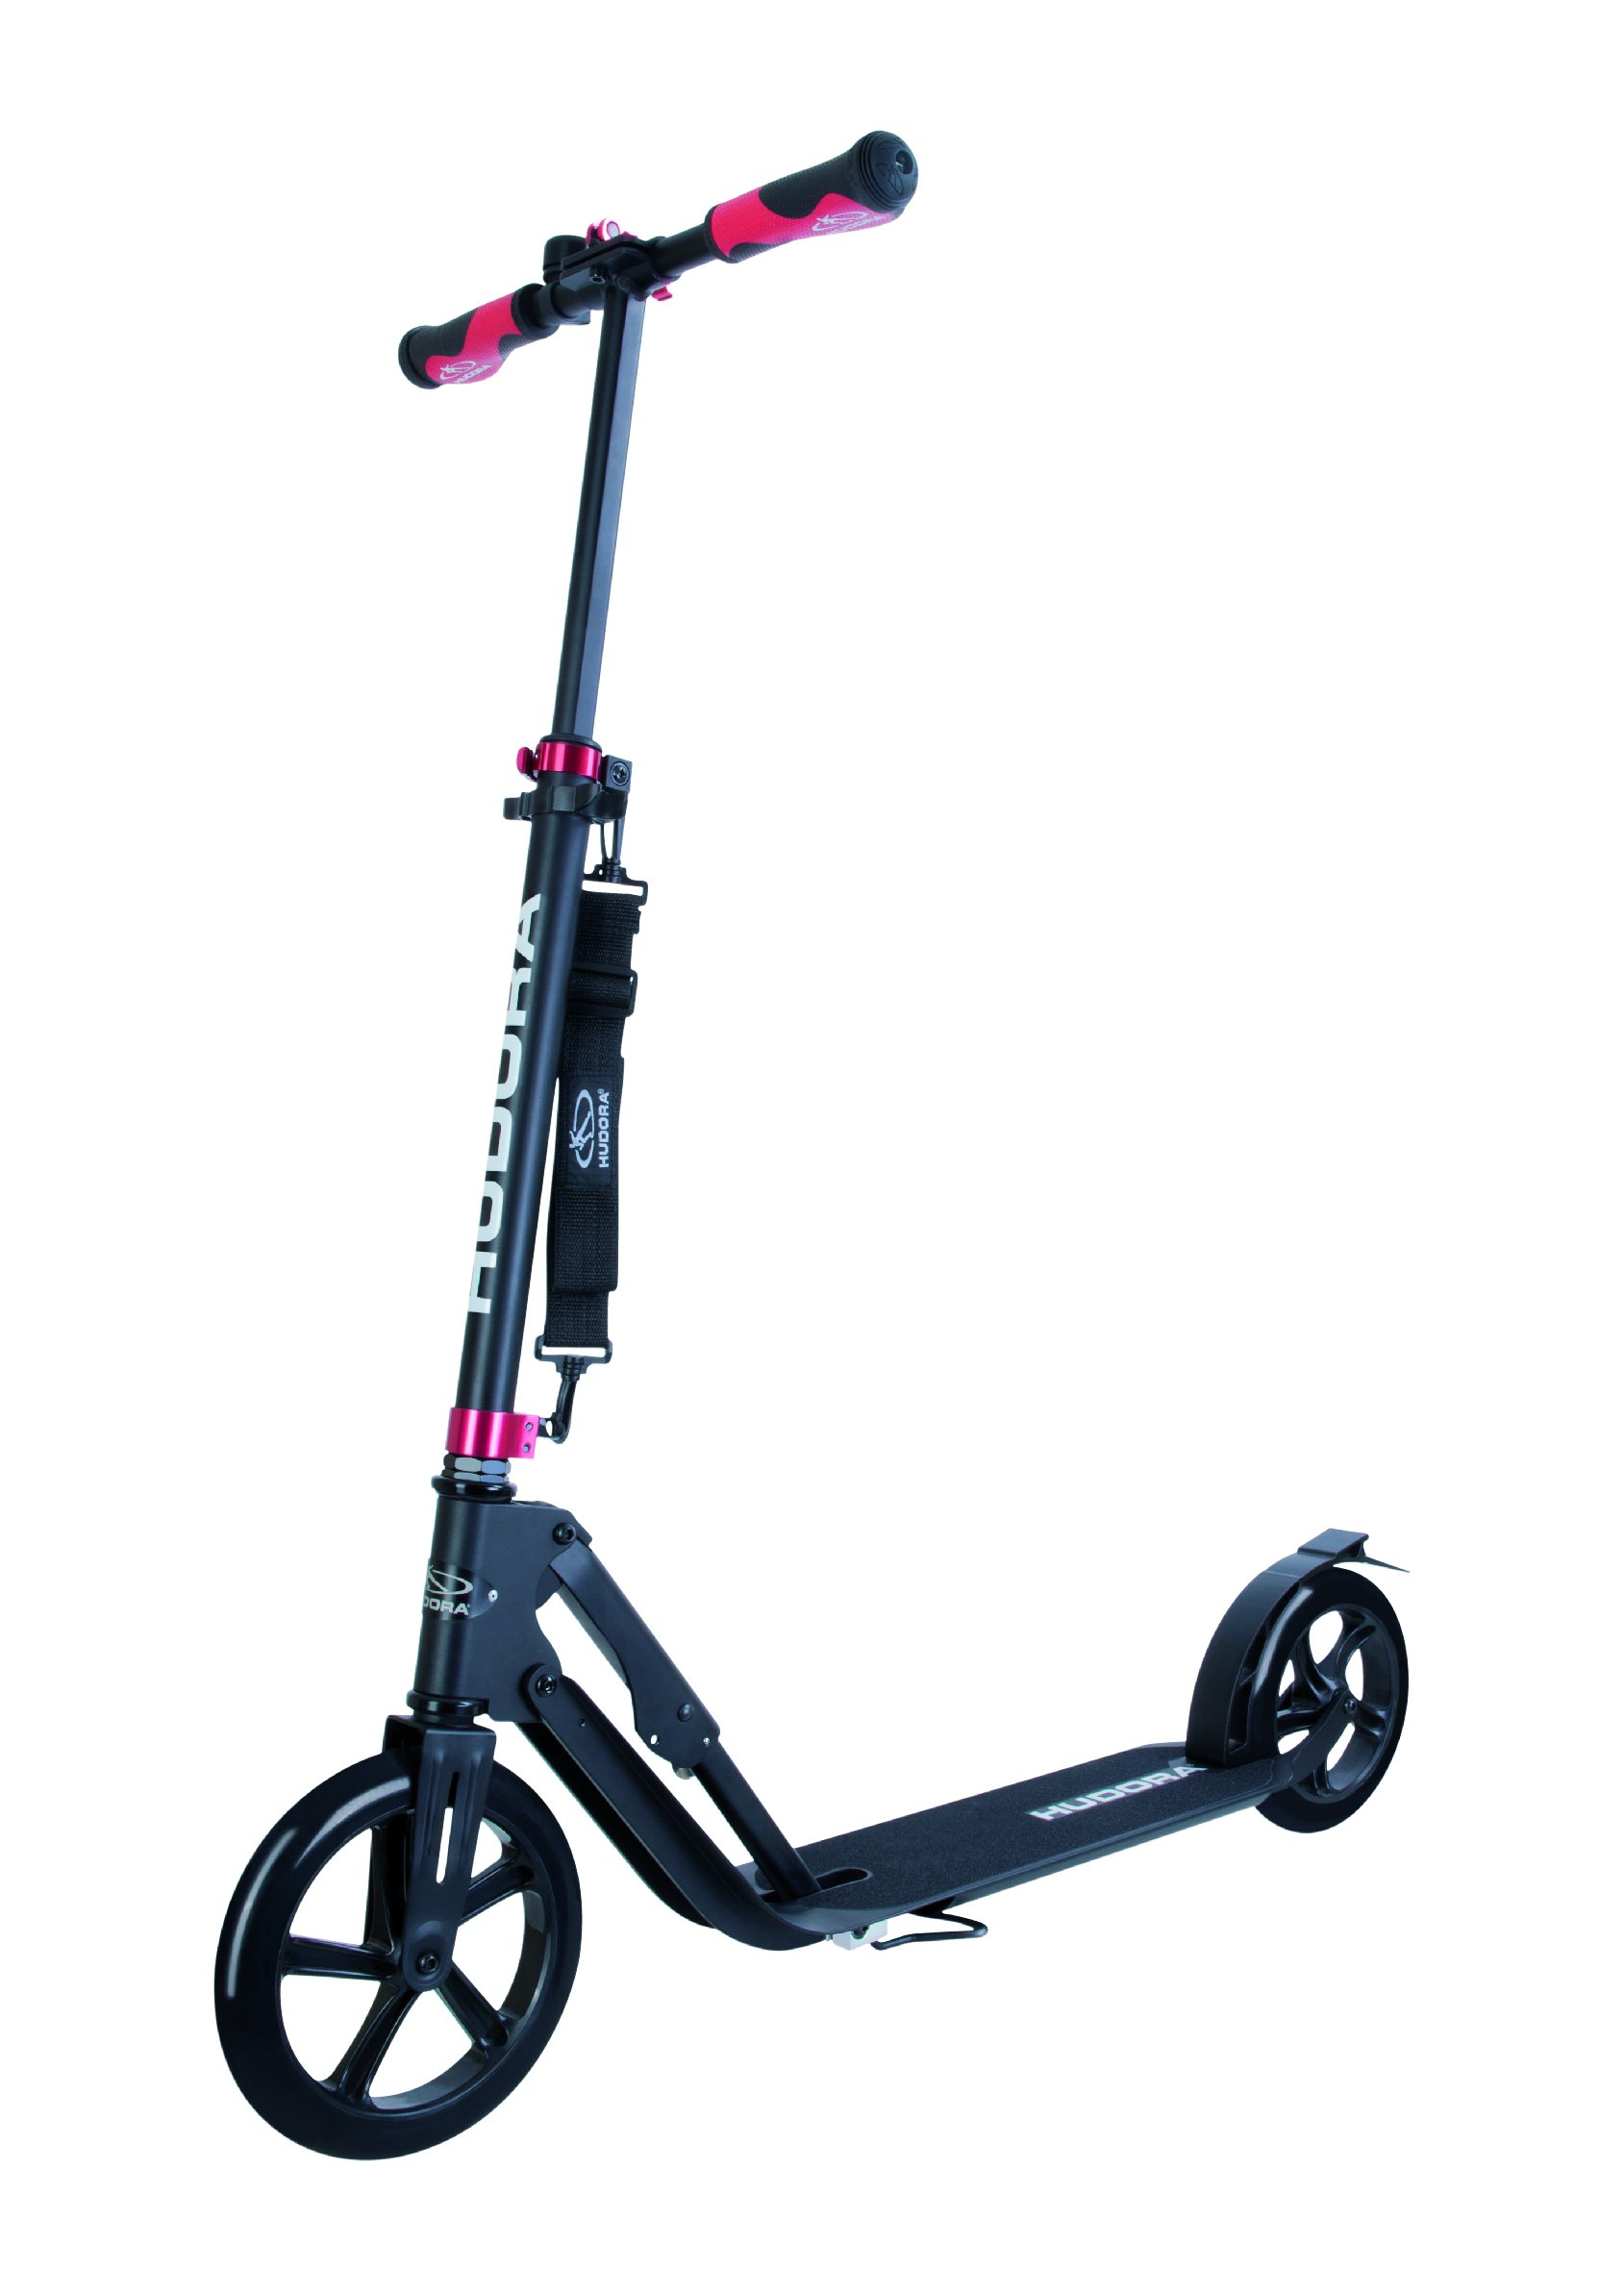 HUDORA 230 Adult Kick Scooters with Big 230mm Front PU Wheel, Easy Folding, Height Adjustable, Reinforced Deck (Not Electric Scooter) by HUDORA